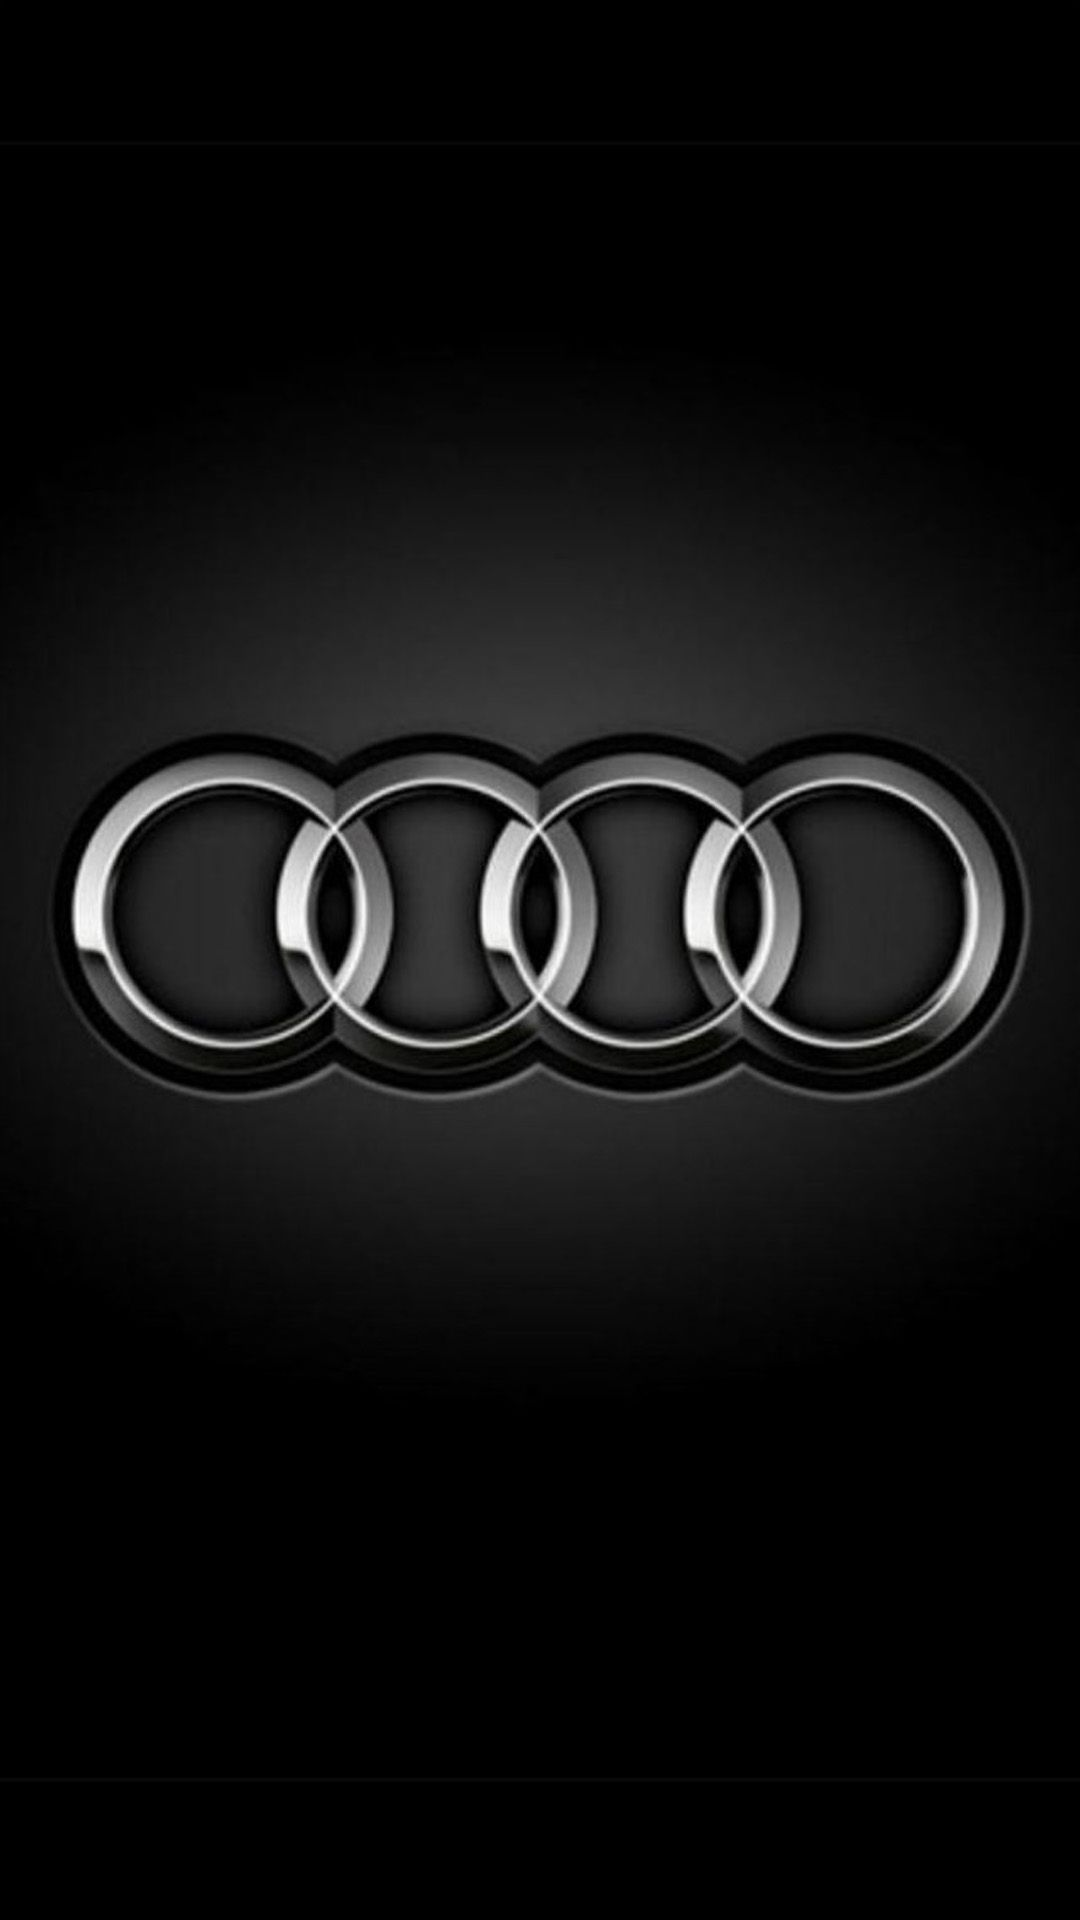 Audi Logo Galaxy Note 3 Wallpapers Car Logos Audi Cars Audi Logo